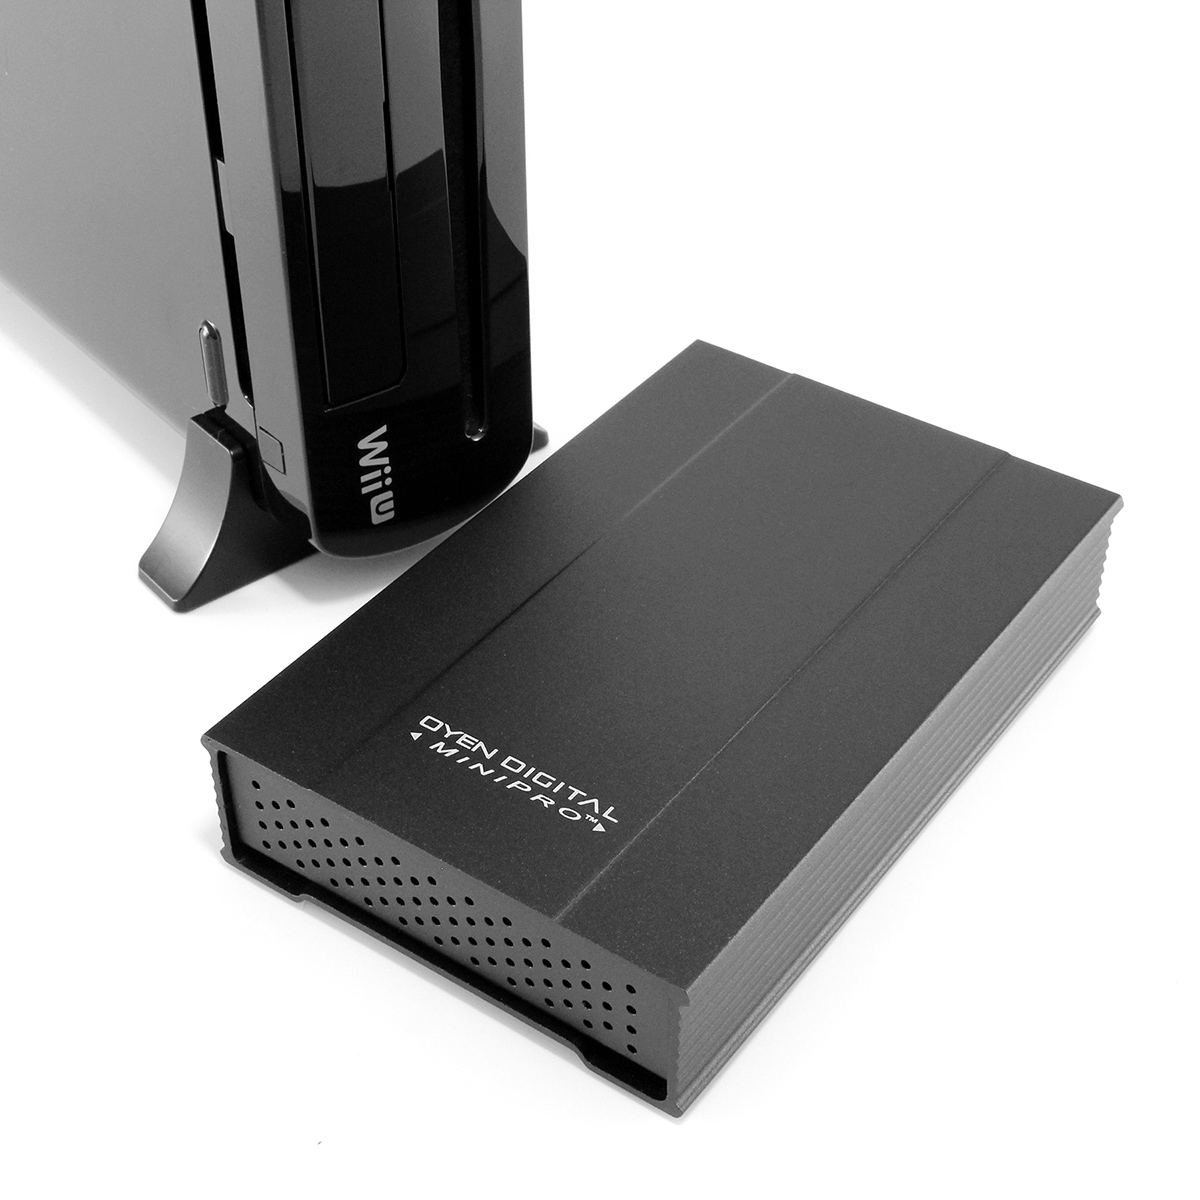 MiniPro 1TB External USB 3.1 Portable Hard Drive for Nintendo Wii U